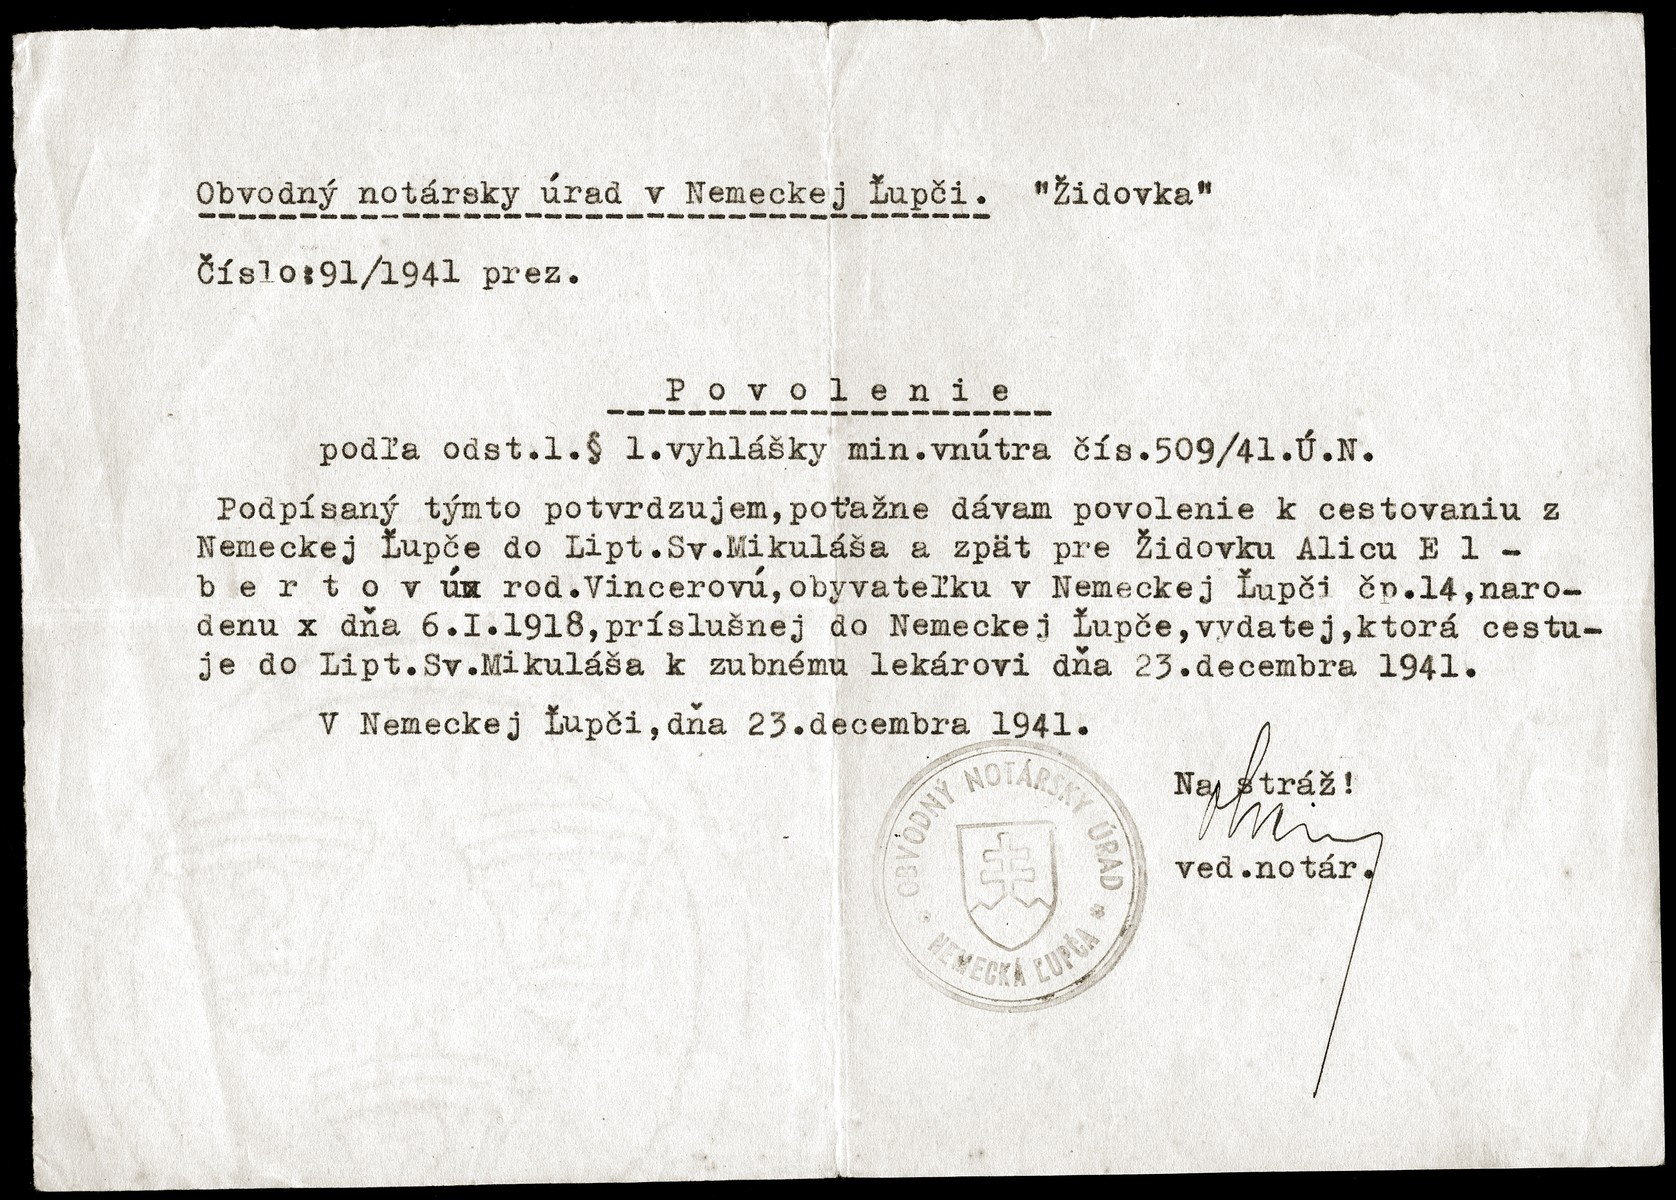 A permit given to the Slovak Jew, Alice Elbert, allowing her to travel to a dentist in a nearby town.    As a Jew, she could not leave her home without permission from local authorities.